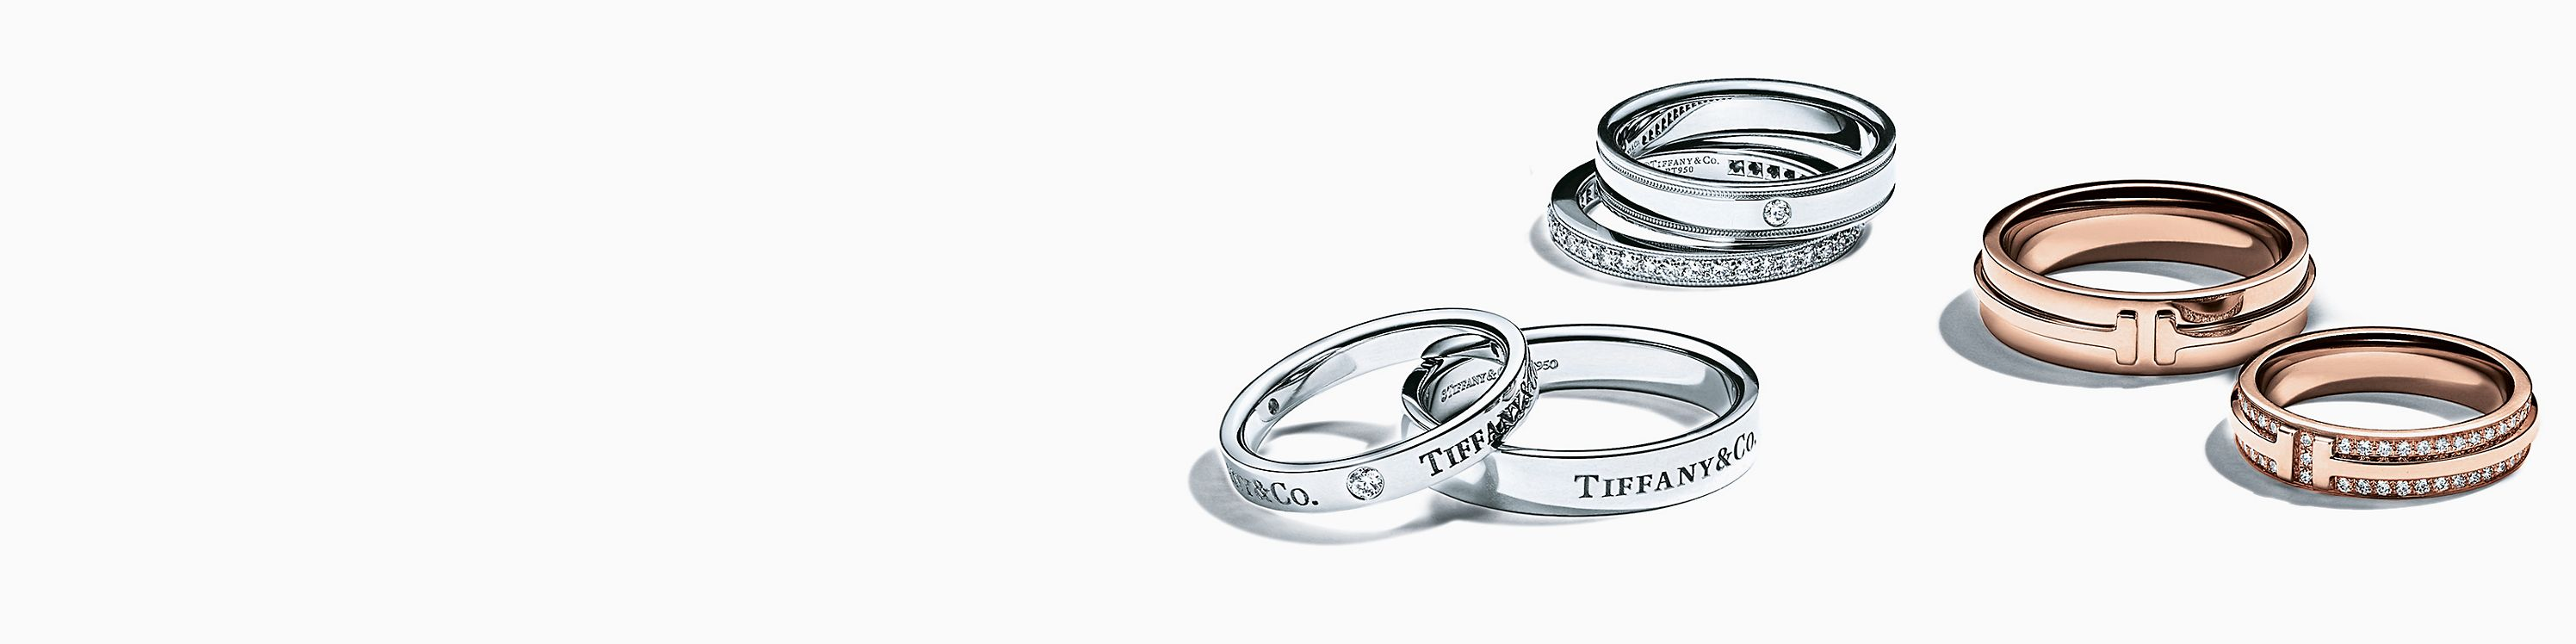 Tiffany & Co. Couples' Rings